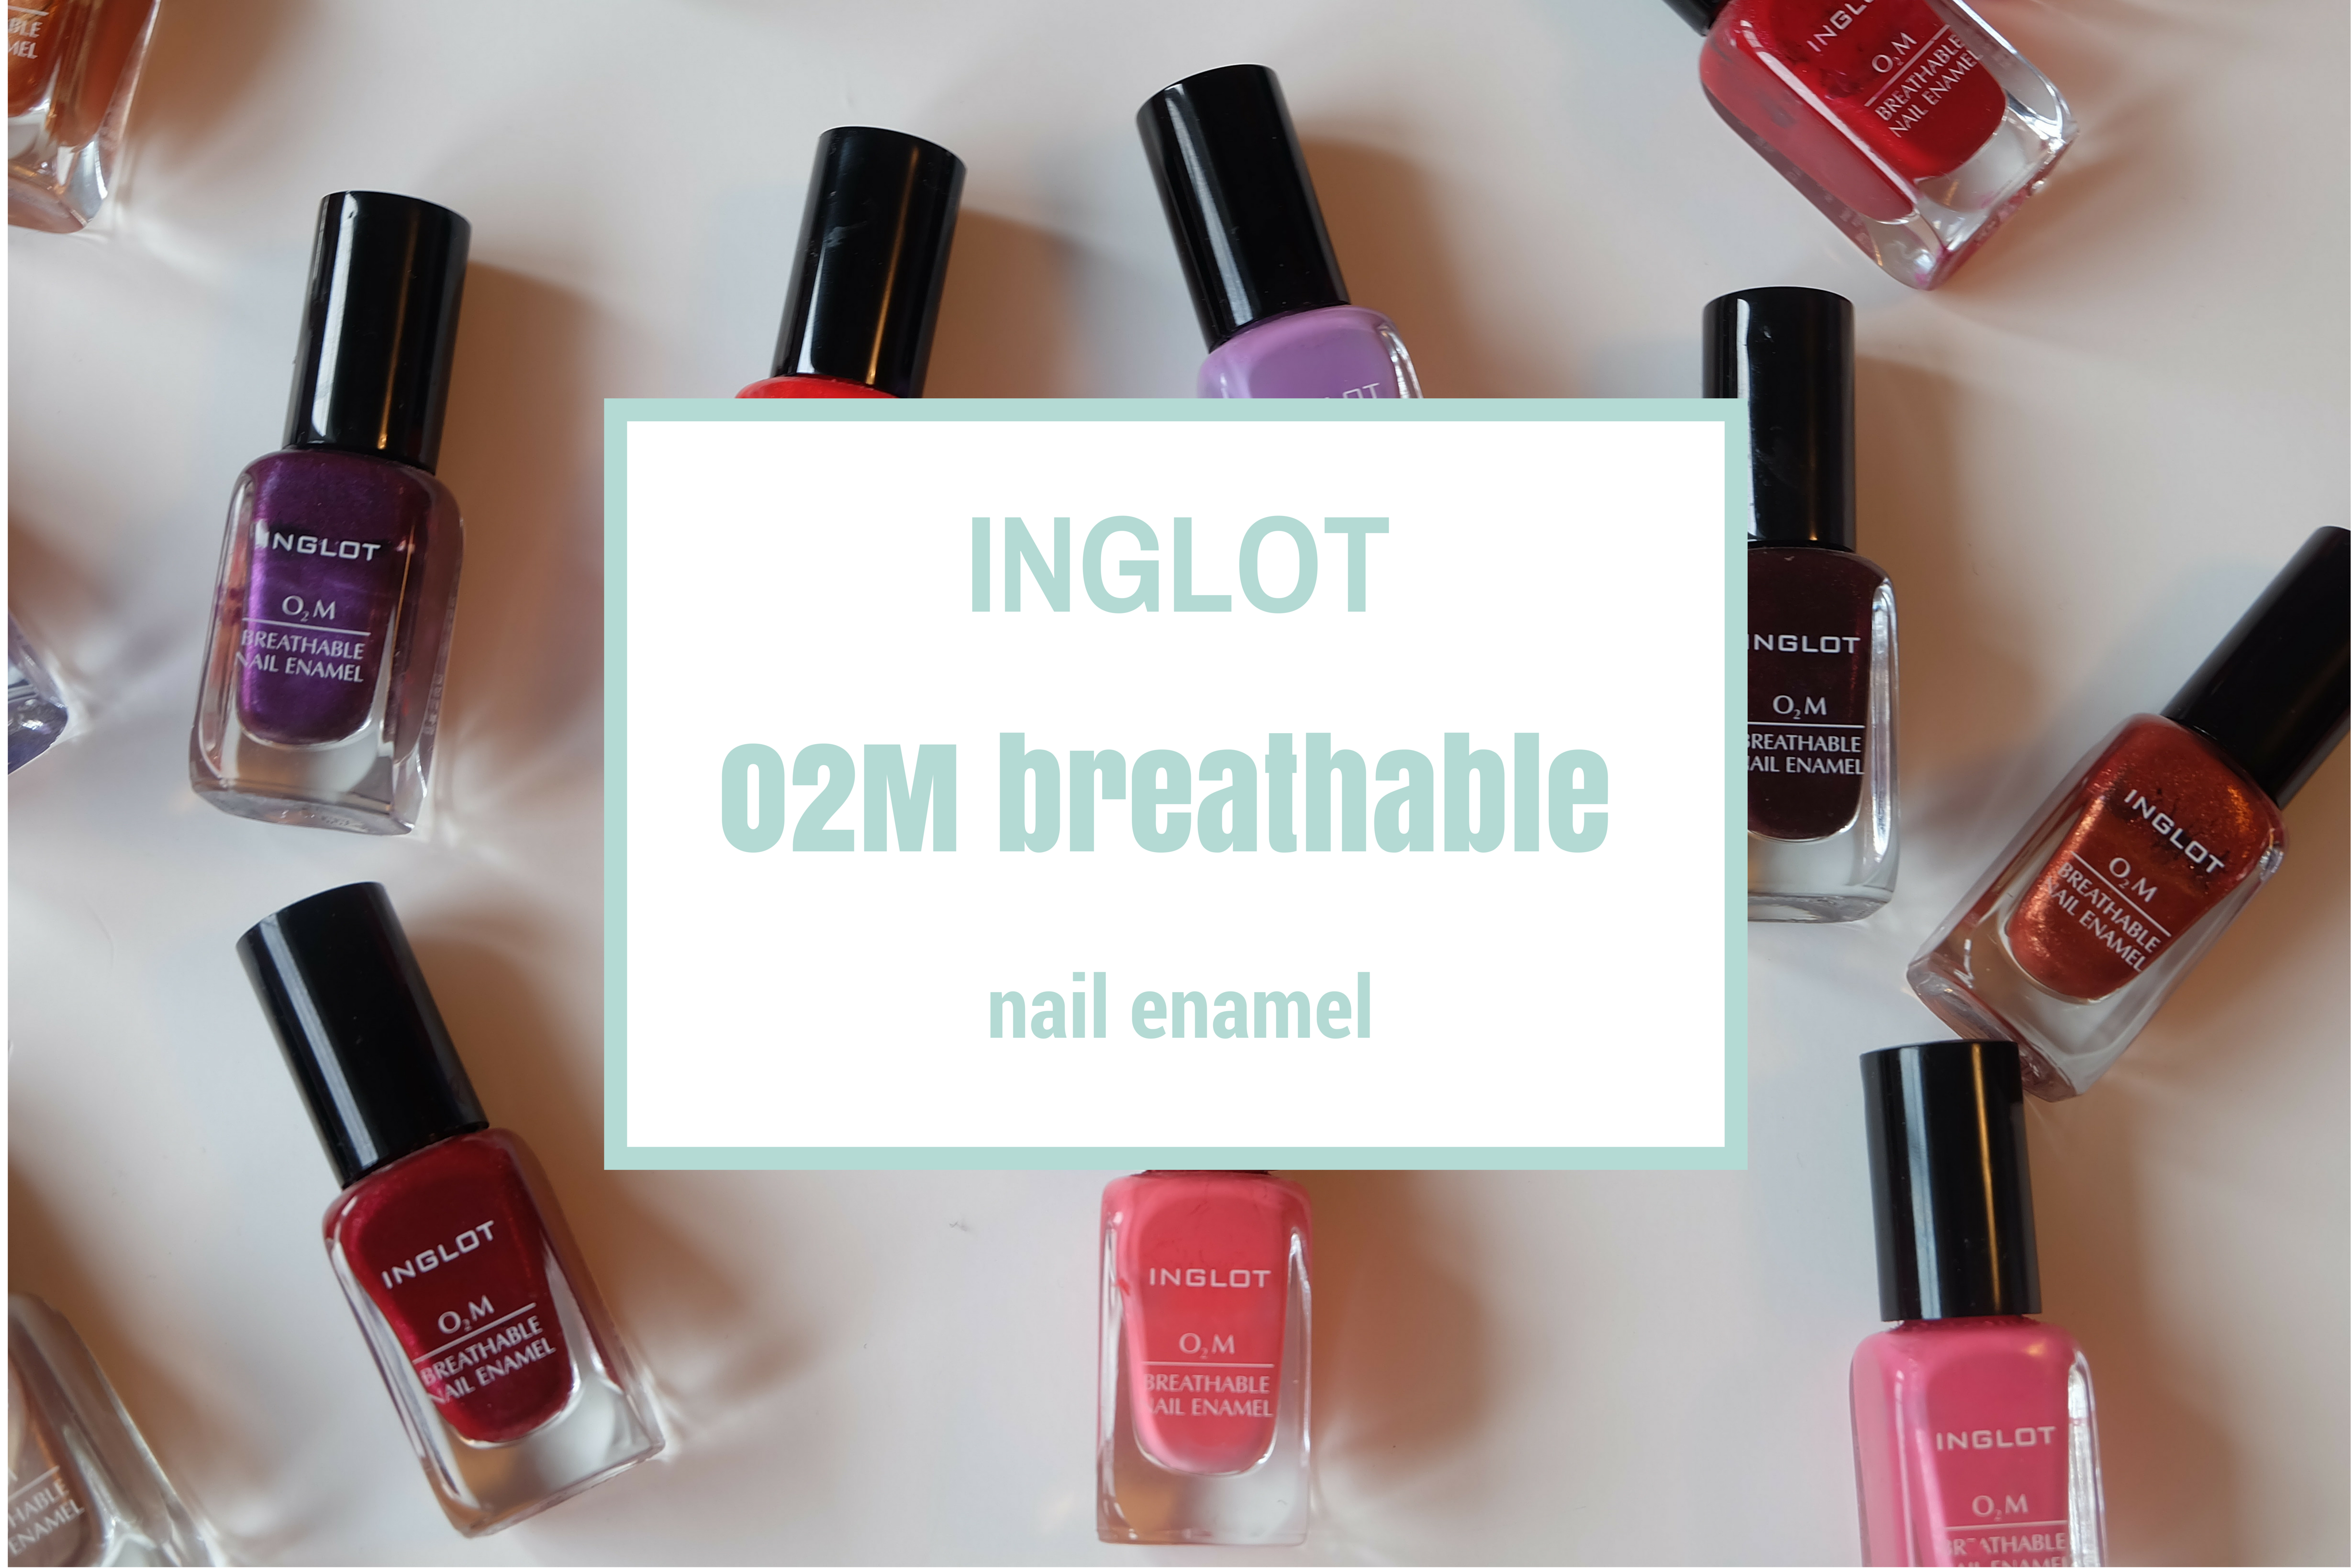 Inglot (Halal) O2M Breathable Nail Enamel [Swatches] – Mosesaly